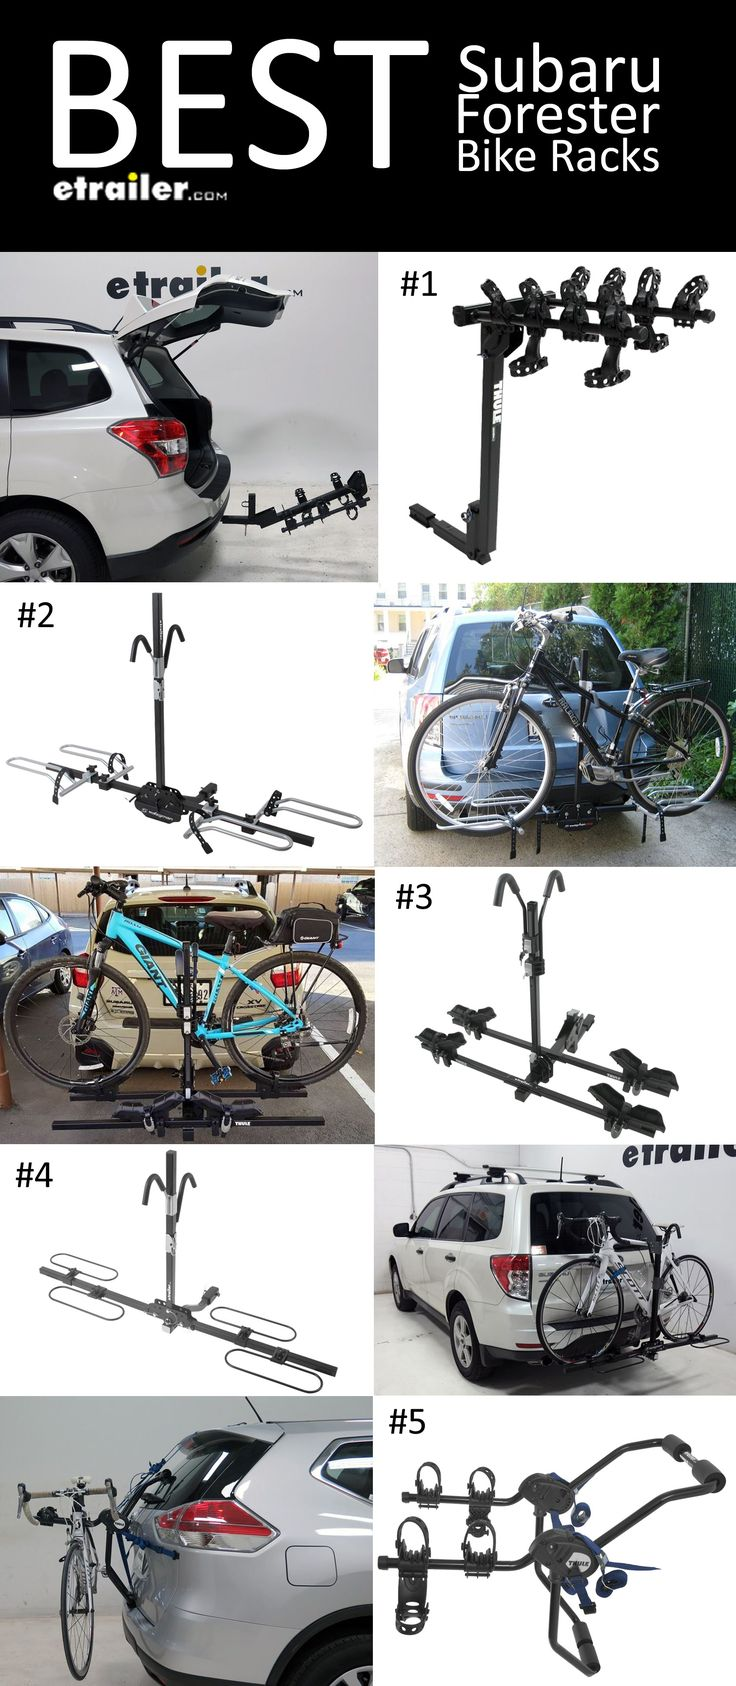 Best Subaru Forester Bike Racks!  - Thule Hitching Post Pro - Folding Tilting 4 Bike Rack w Anti-Sway  - Swagman XTC-2 2-Bike Platform Rack - Thule Doubletrack Platform-Style 2 Bike Rack  - Swagman XC 2-Bike Rack Platform Style - Thule Passage Trunk Mount 2 Bike Carrier